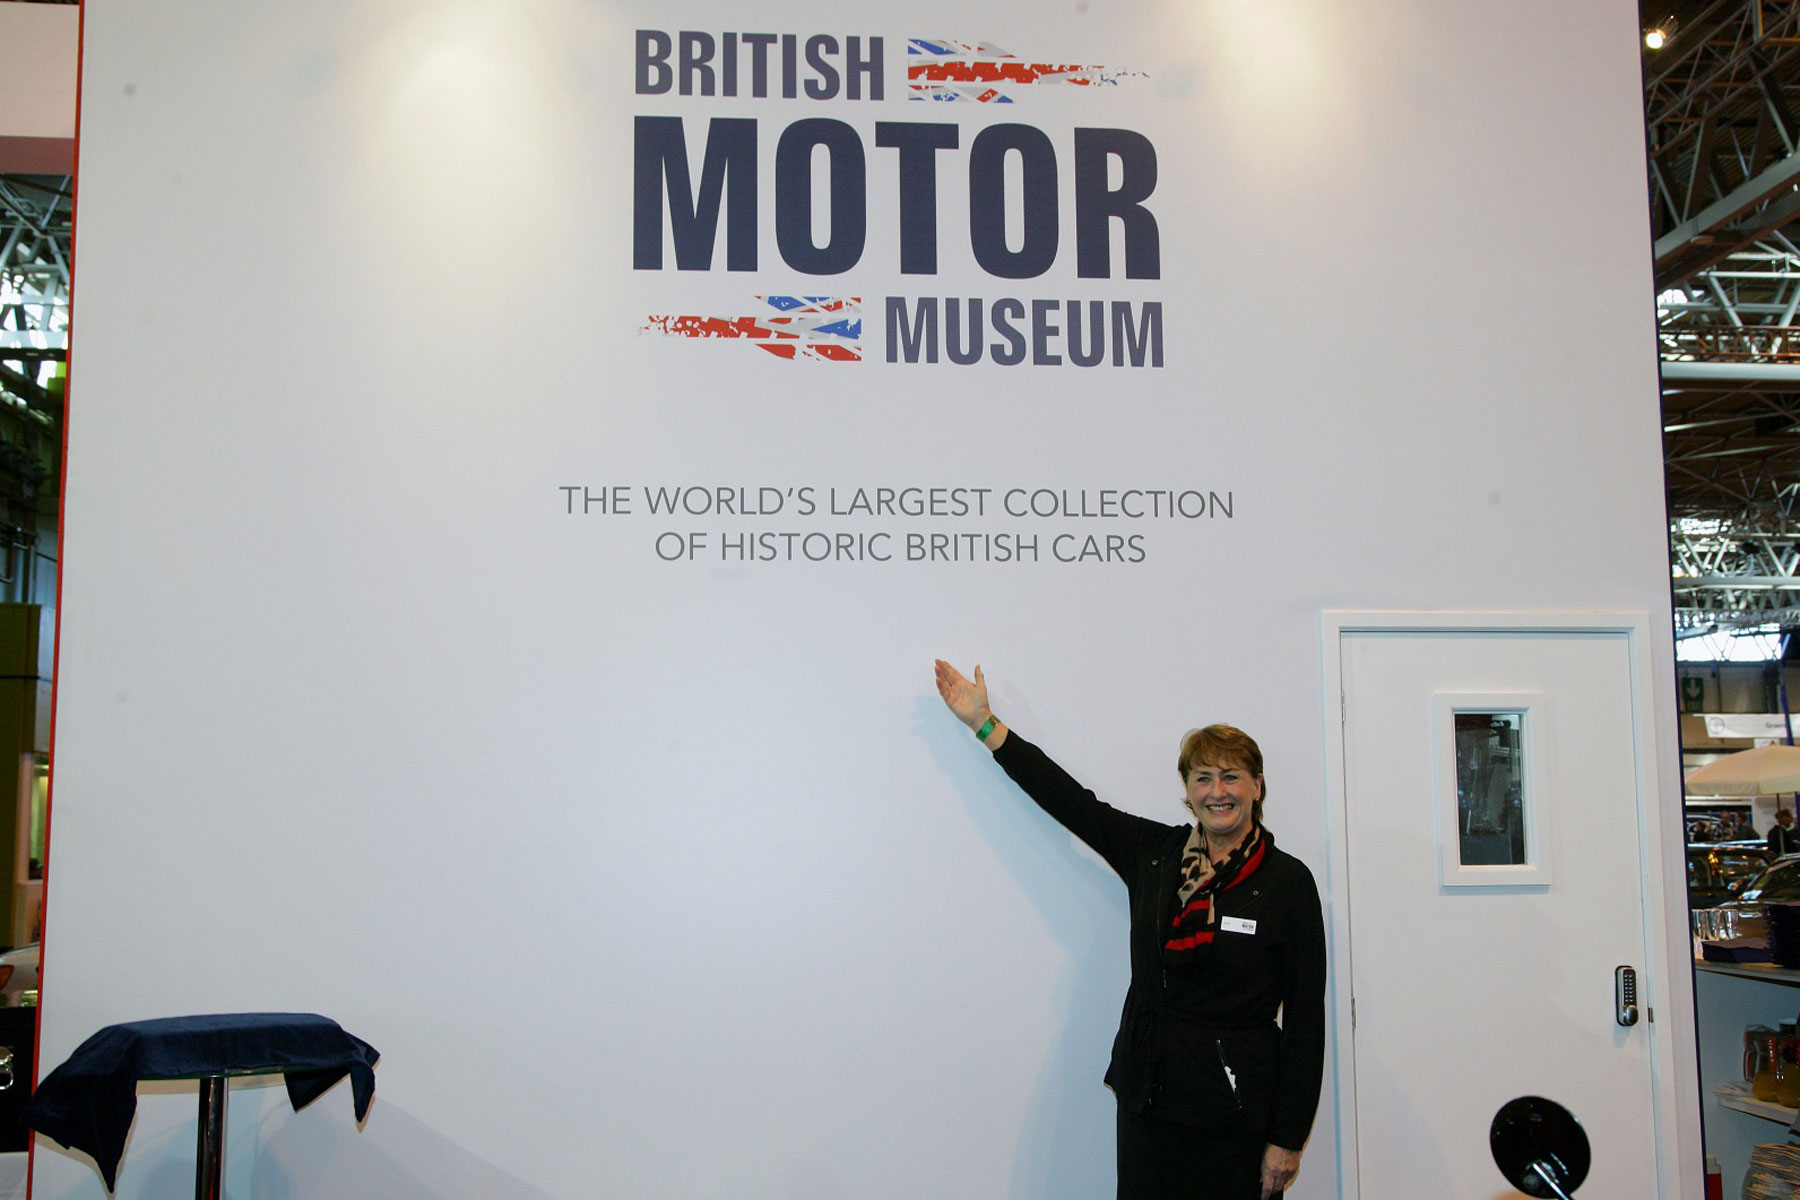 Gaydon Heritage Motor Centre to rebrand as the 'British Motor Museum'